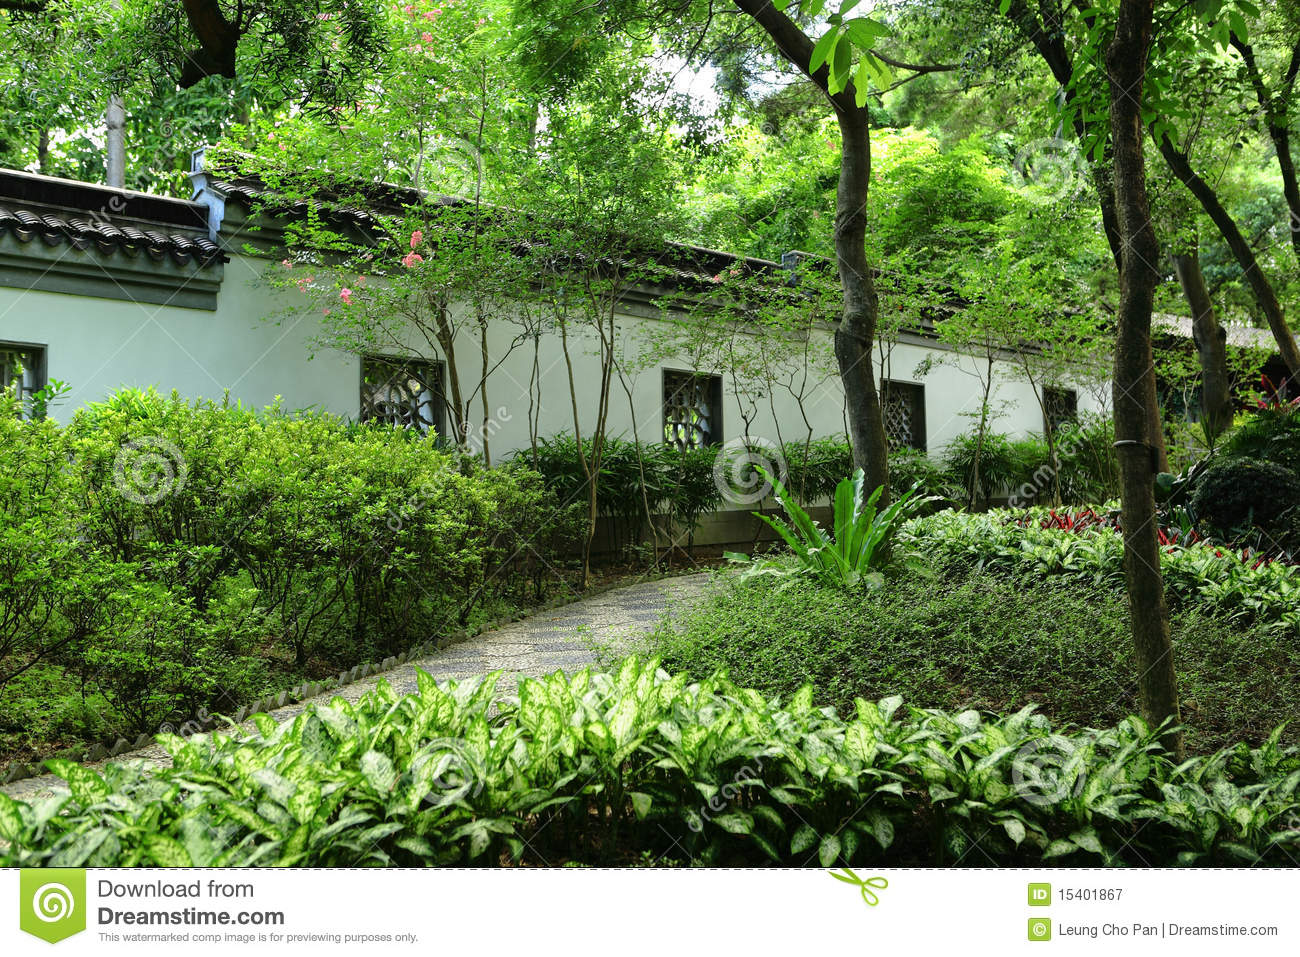 Chinese garden royalty free stock photography image - How to create a chinese garden ...